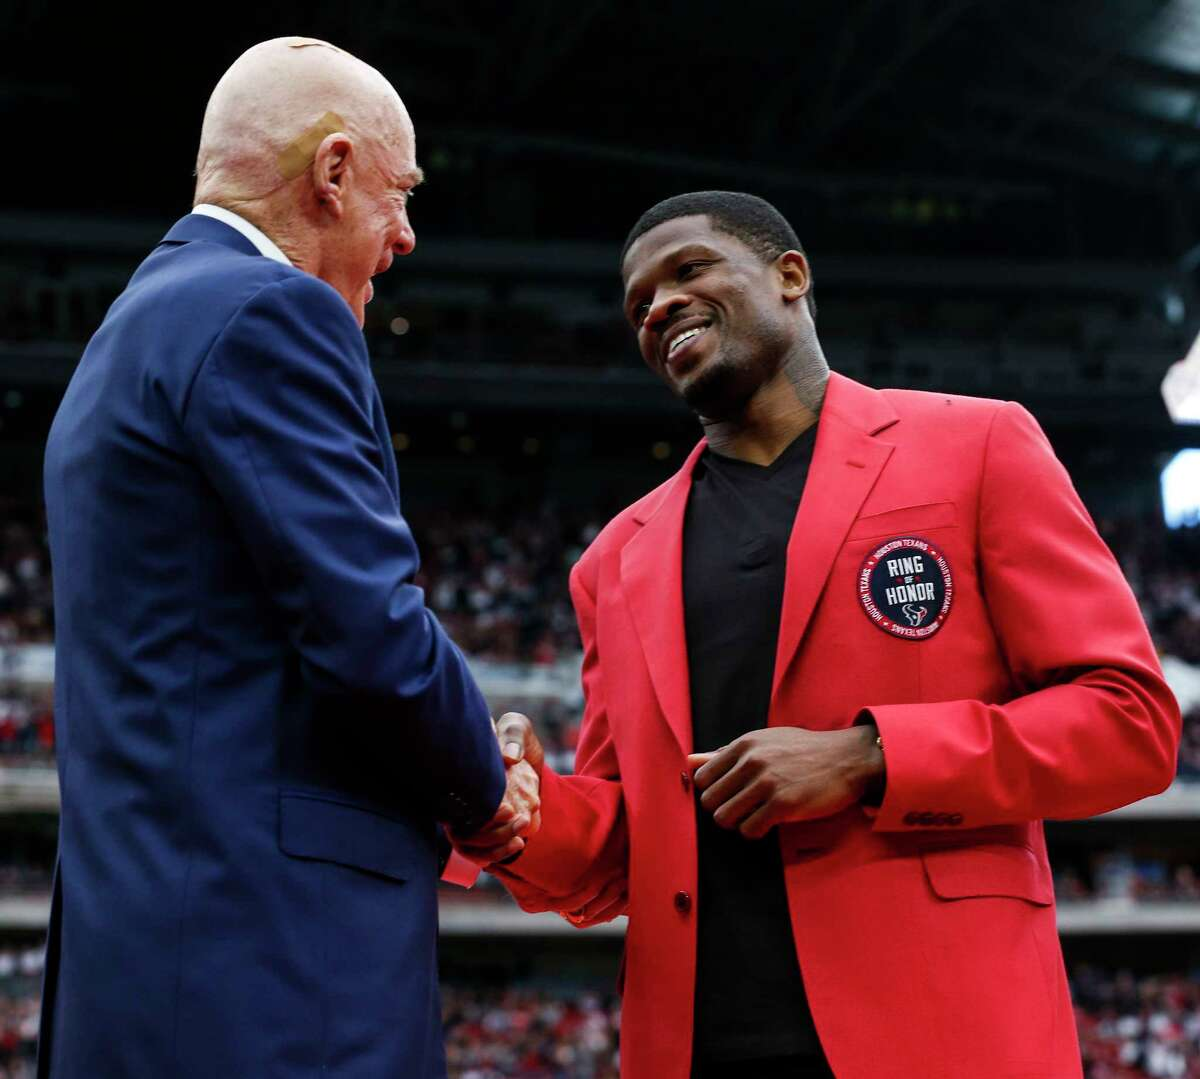 Houston Texans owner Bob McNair shankes hands with former Texans wide receiver Andre Johnson waves to the fans as he is honored as the first Texans player in the Ring of Honor during the halftime celebration at NRG Stadium on Sunday, Nov. 19, 2017, in Houston.